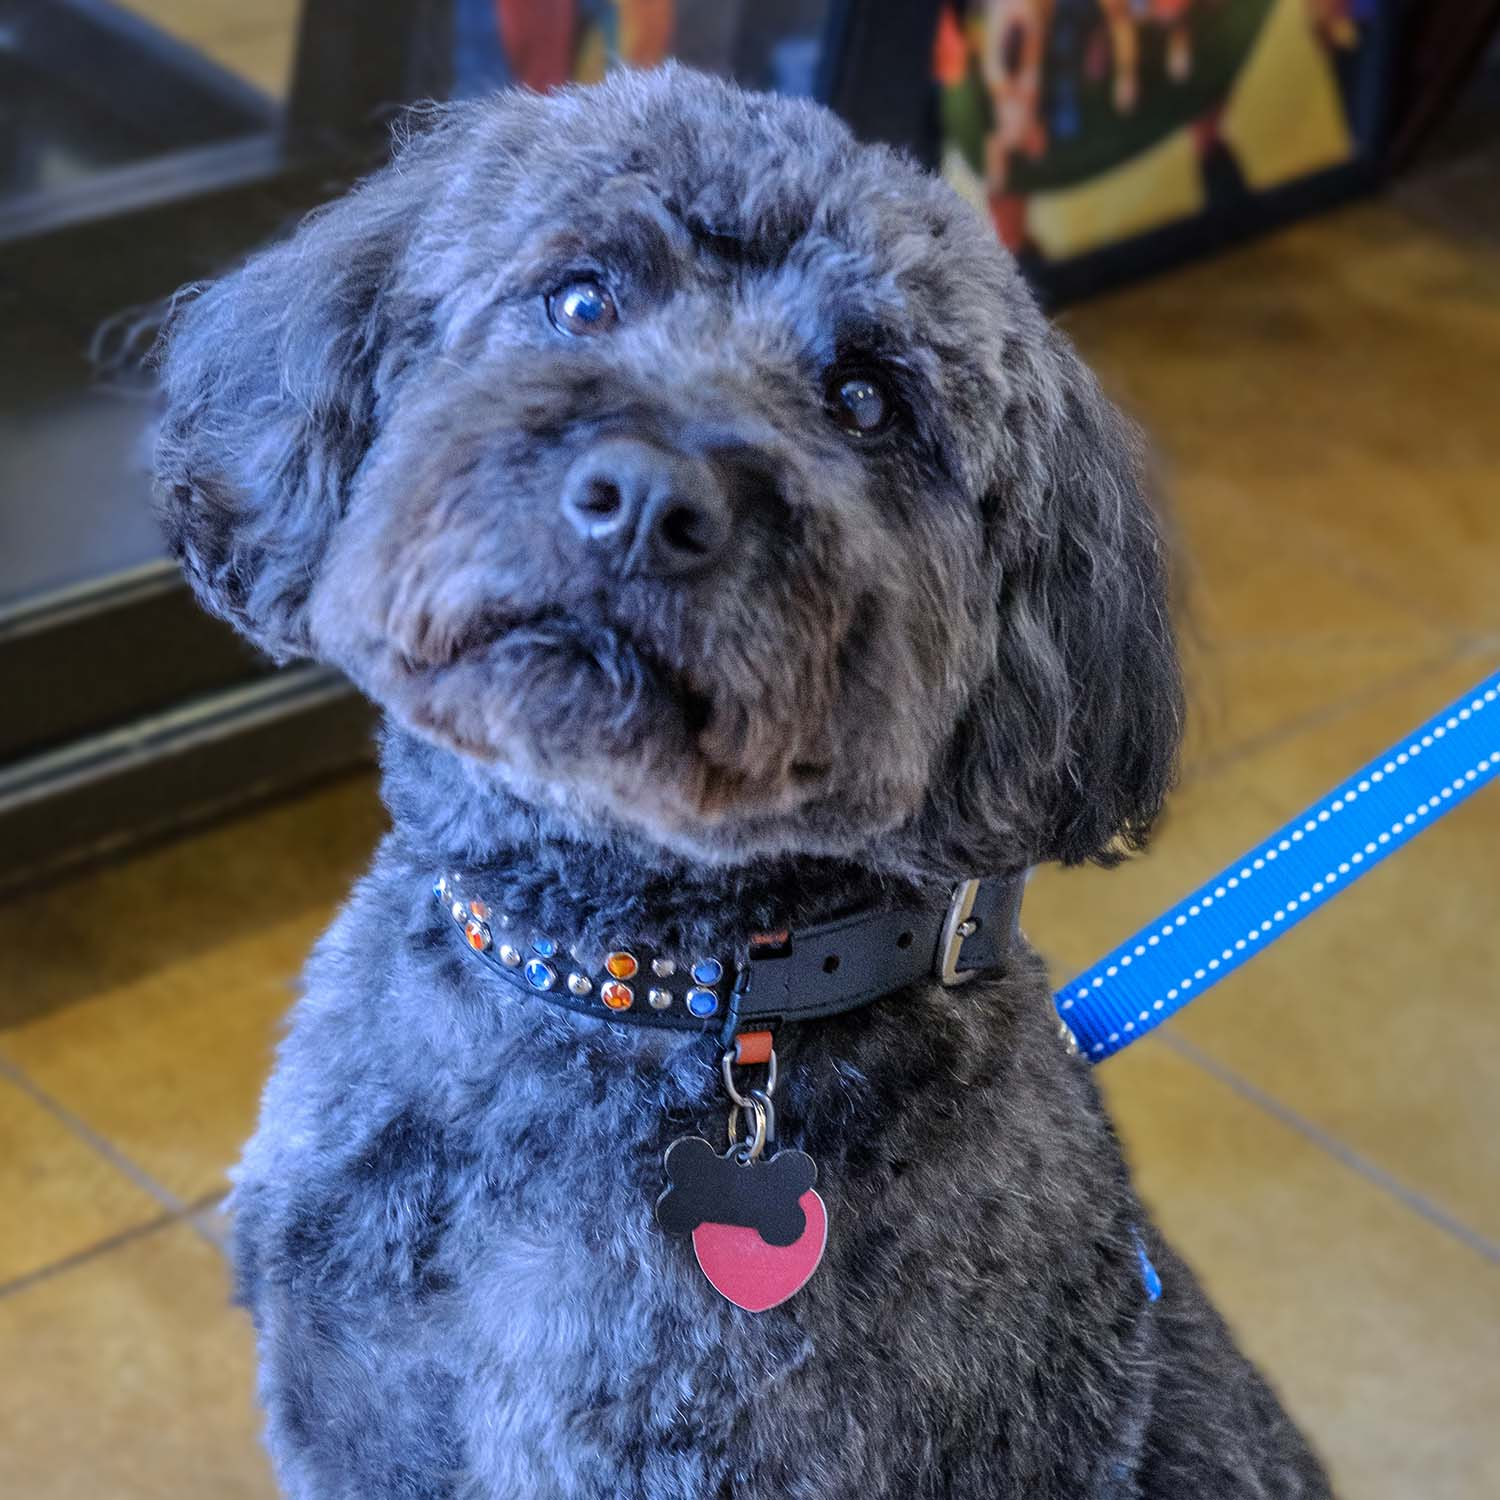 All dogs need a collar and leash. At Fancy Fur, we have a wide selection of both. Our offerings include patterned cloth collars from Elmo's Closet, as well as premium, custom-created Austrian crystal pet collars.